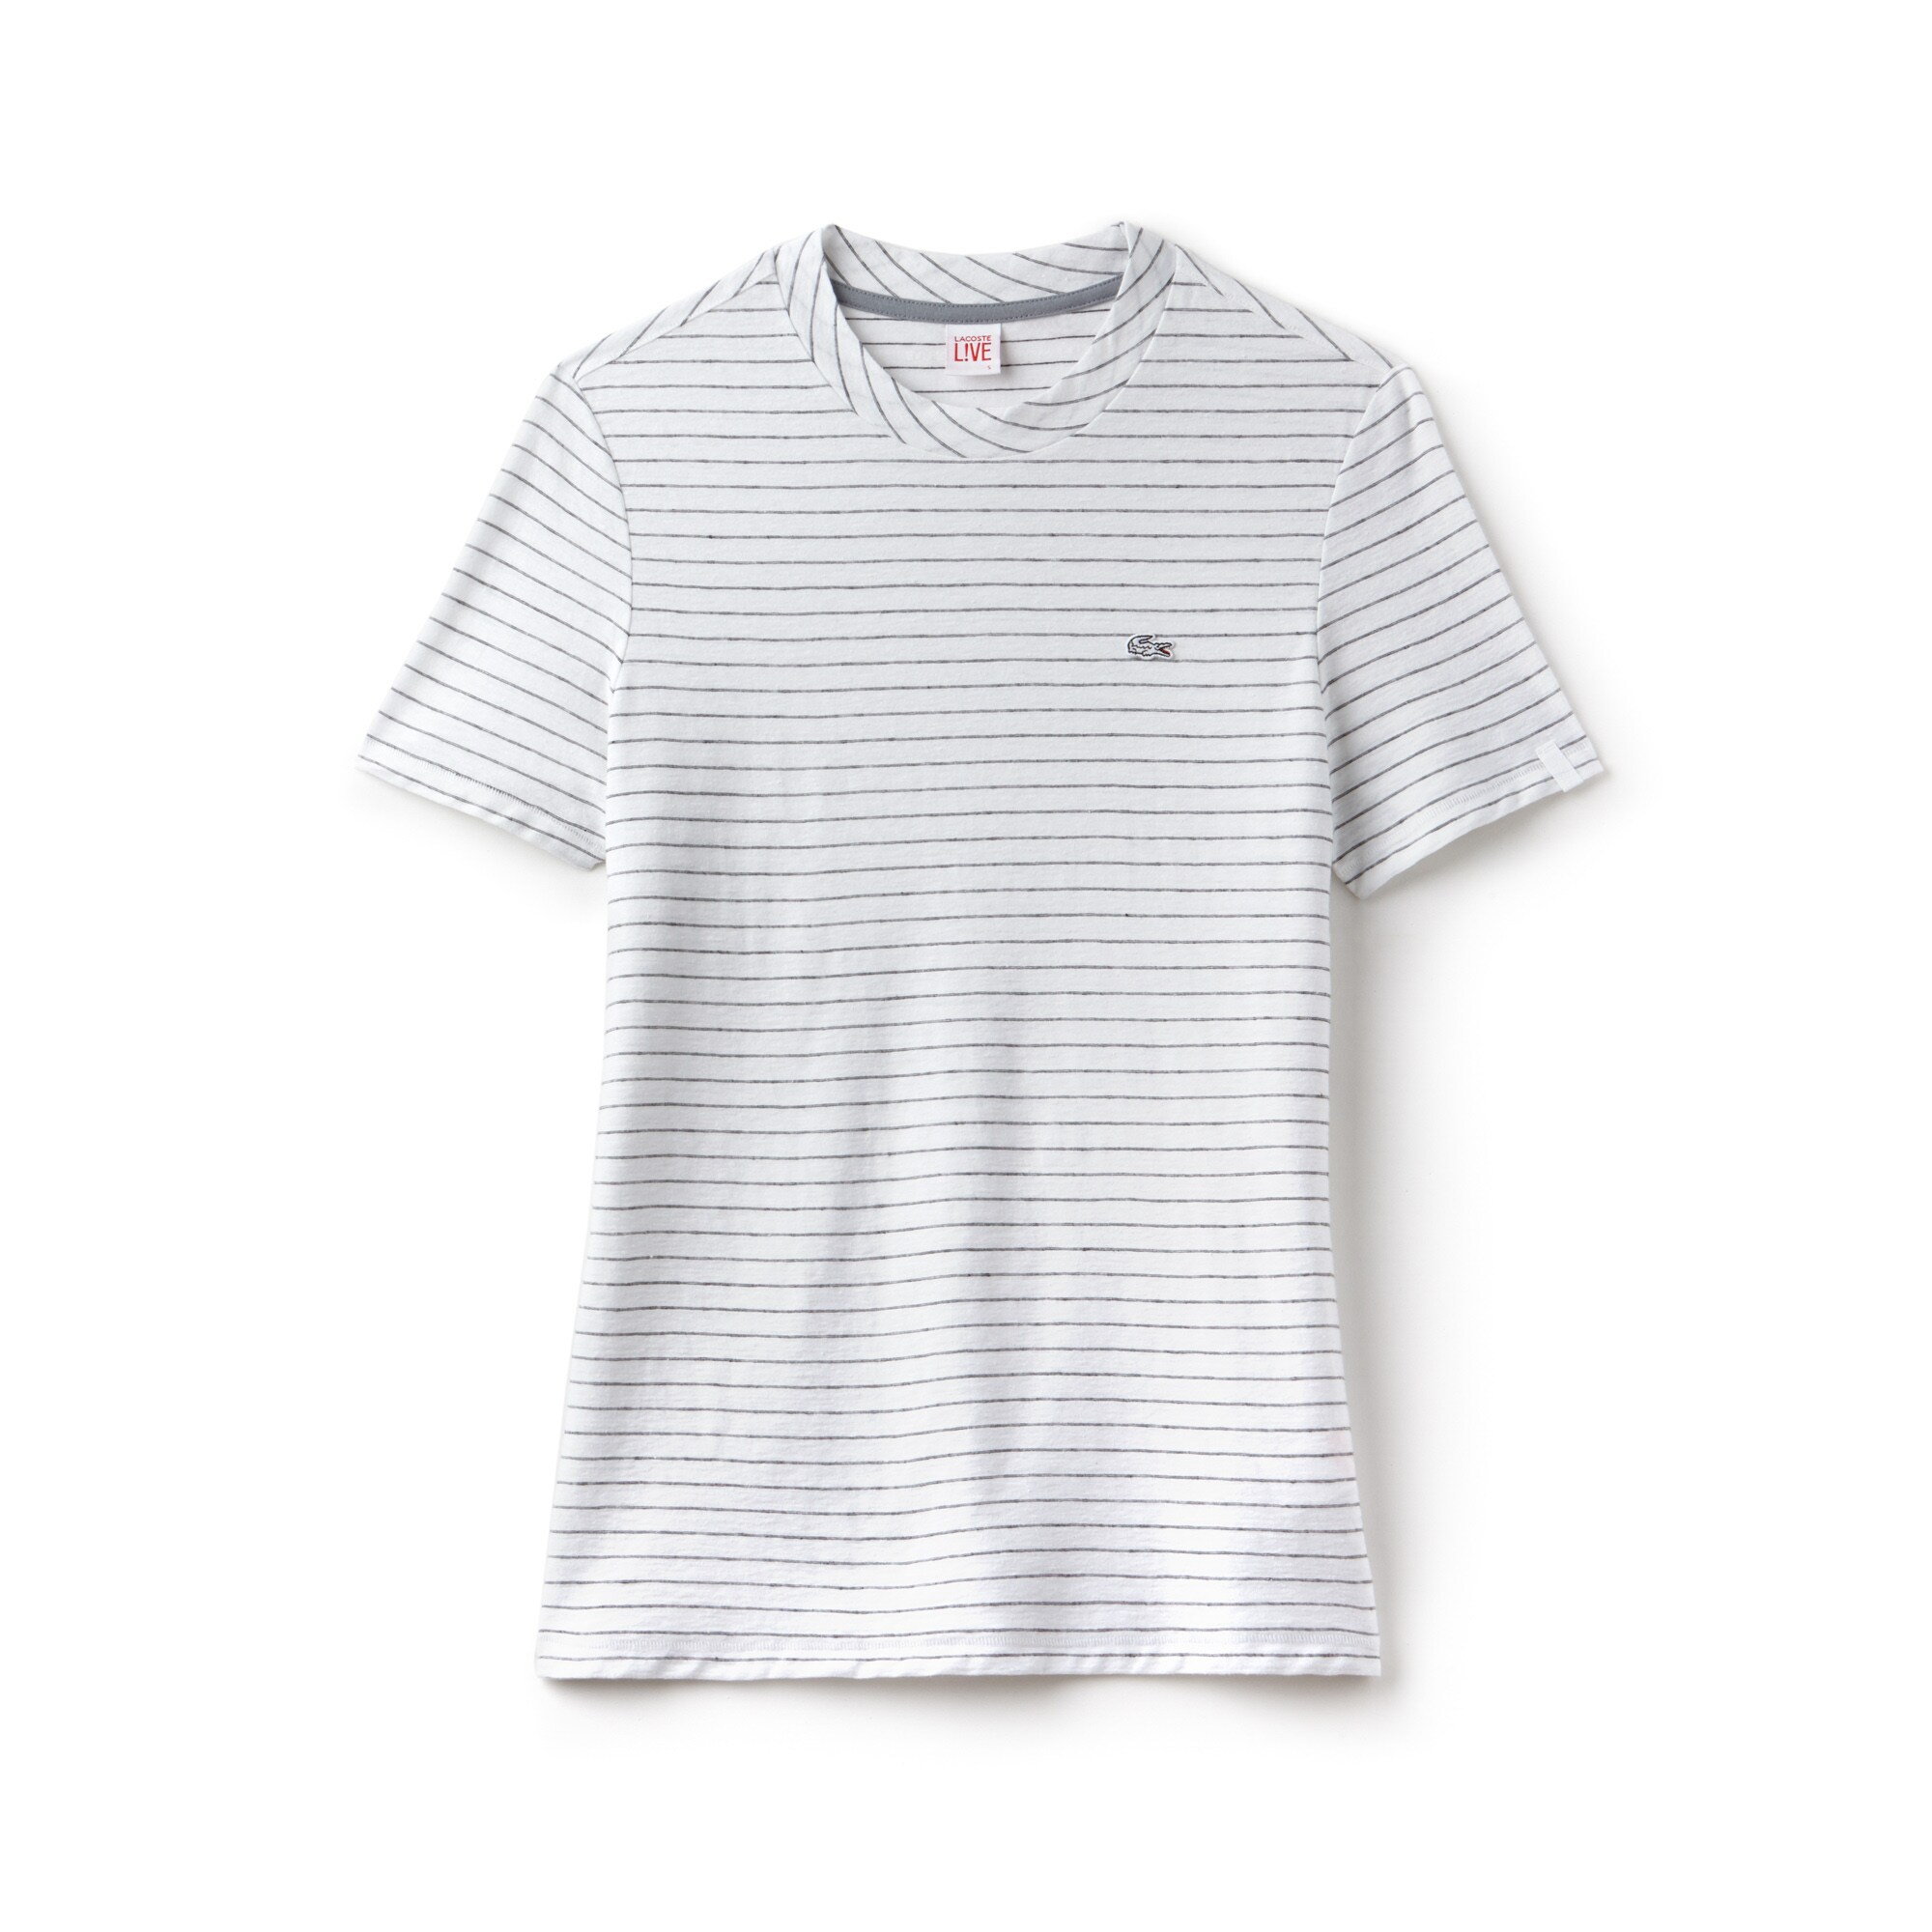 Women's Lacoste LIVE Crew Neck Striped Cotton And Linen T-shirt